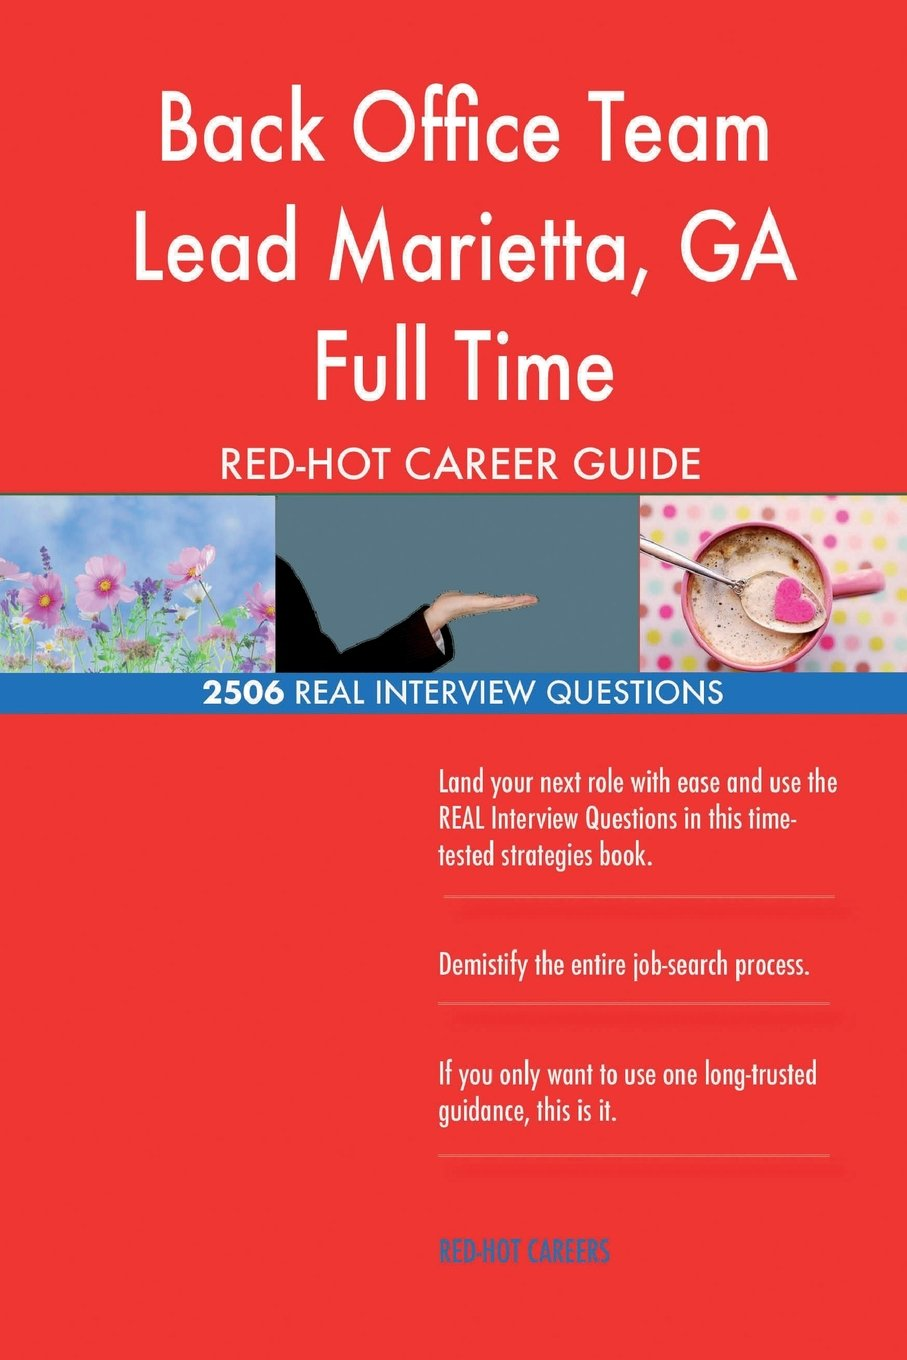 Back Office Team Lead Marietta Ga Full Time Red Hot Career 2506